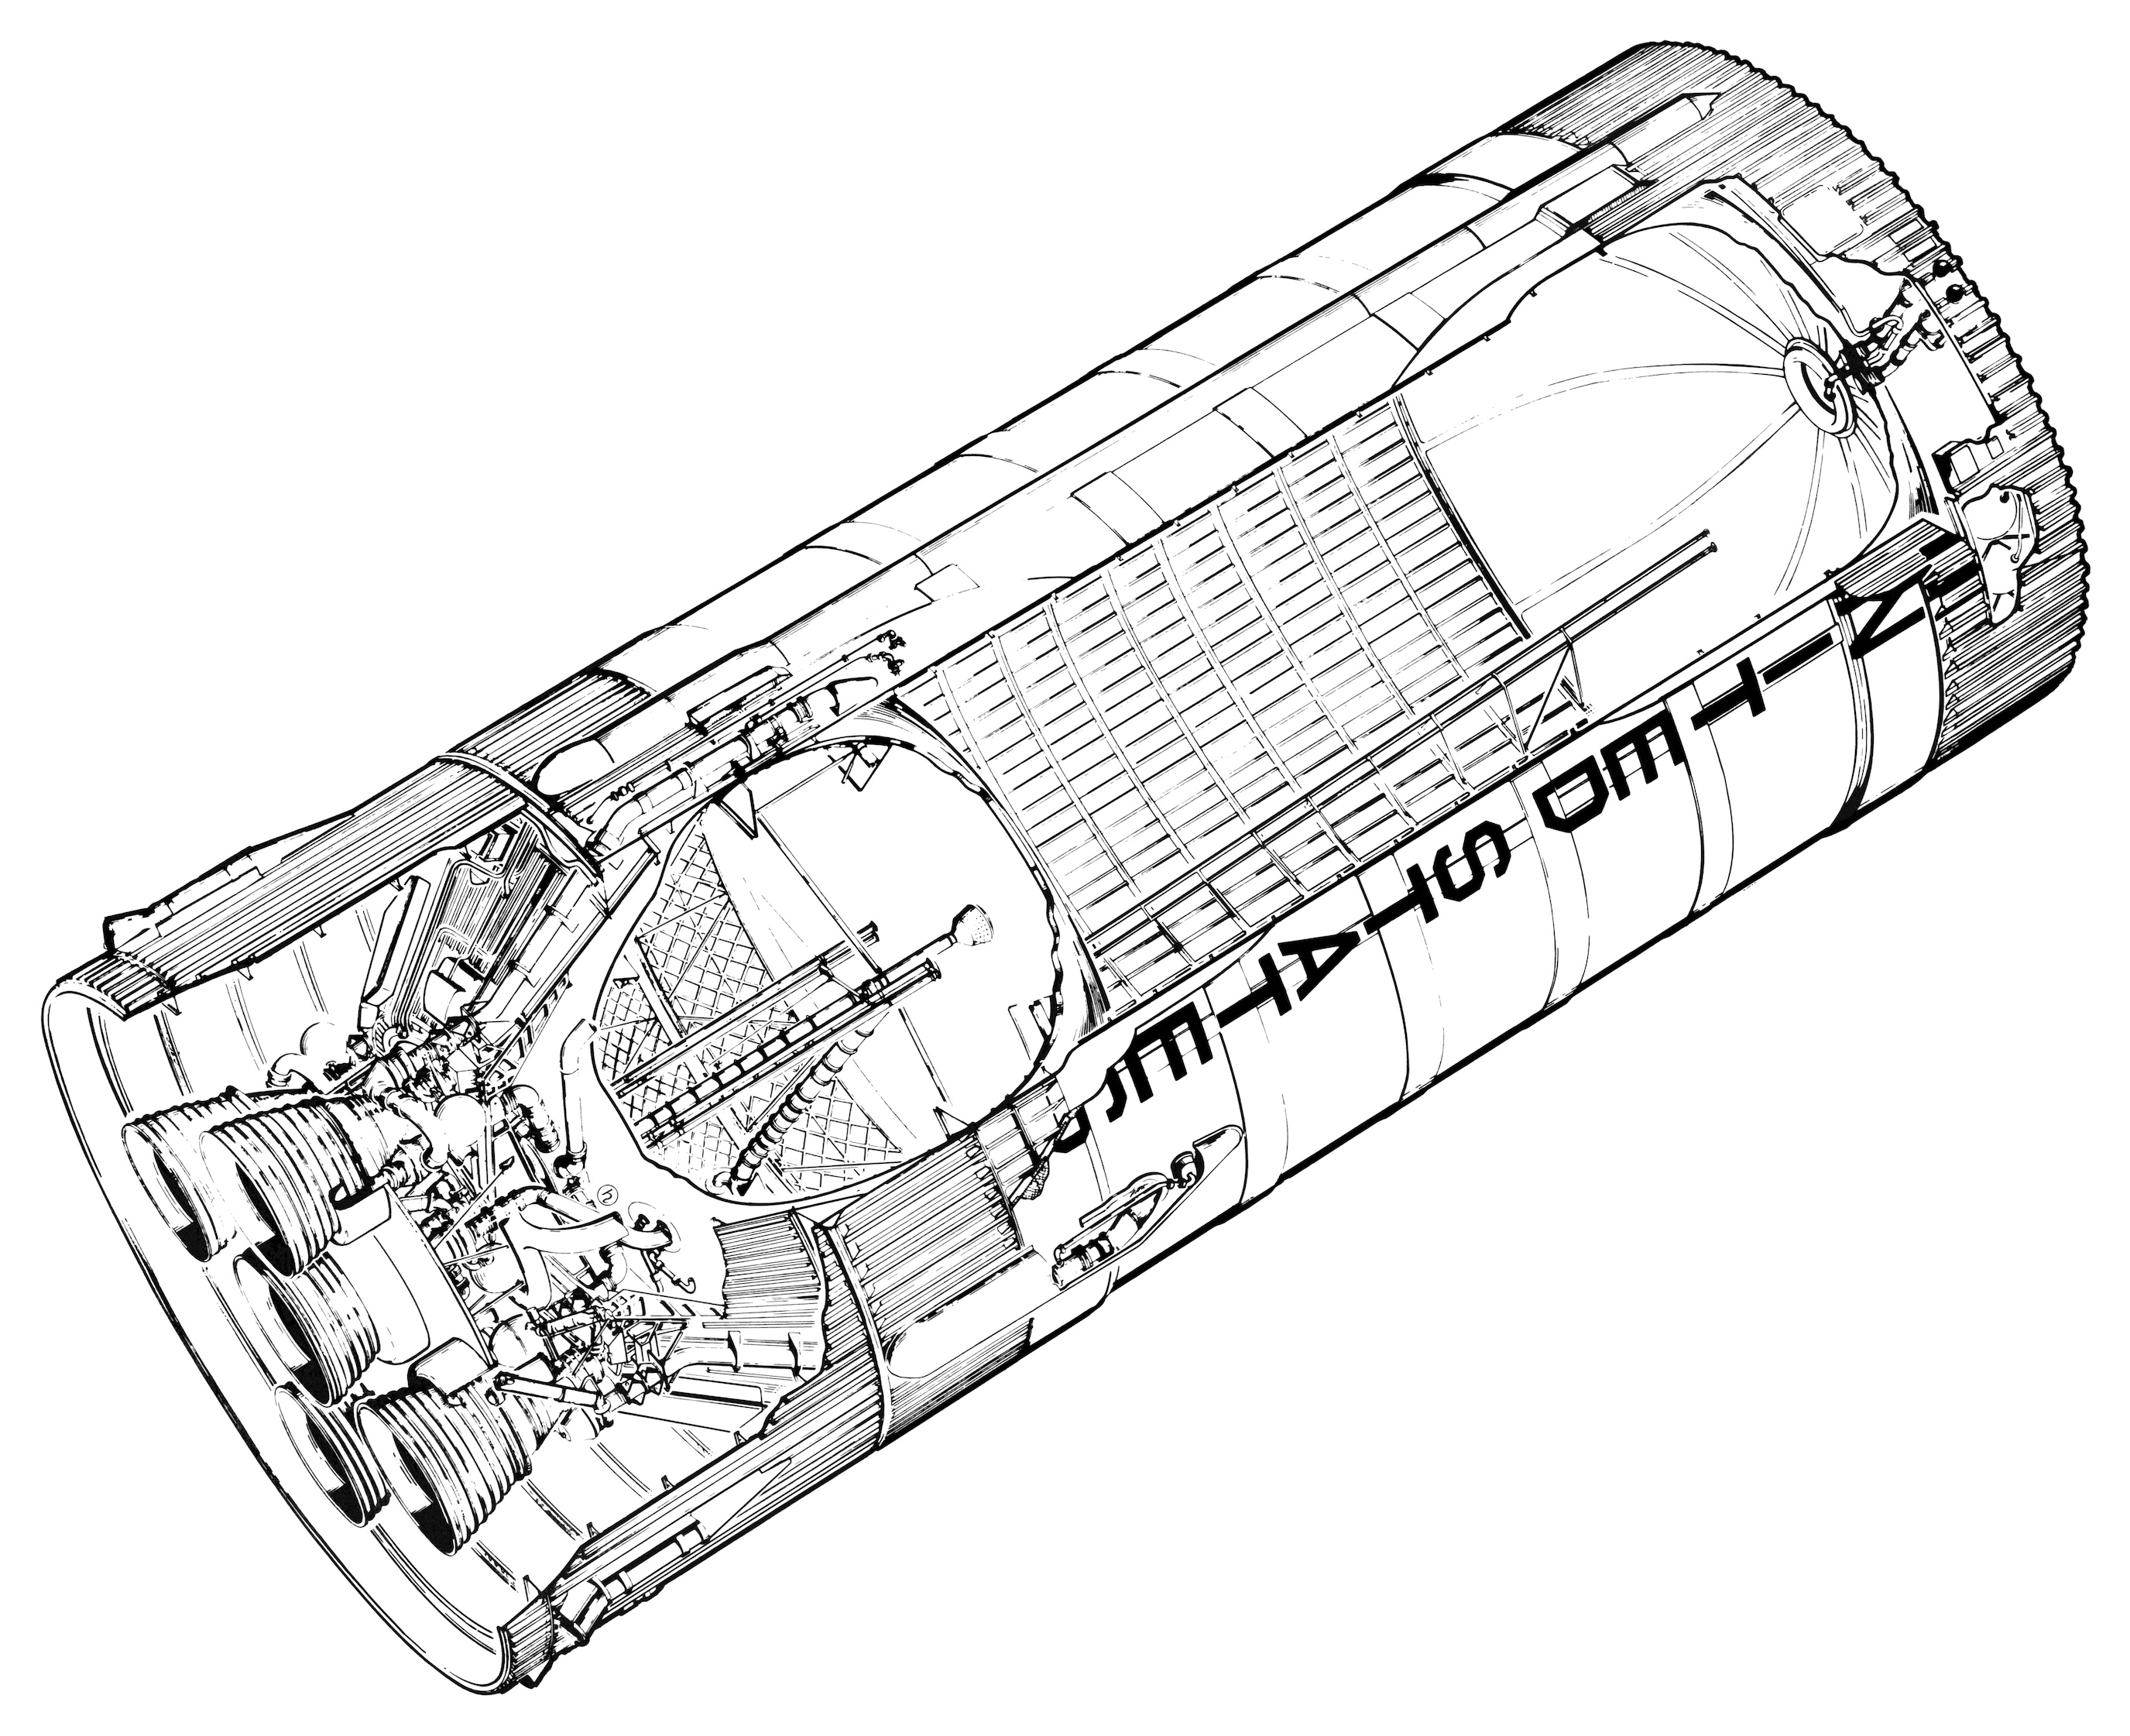 Passenger Rocket Diagram